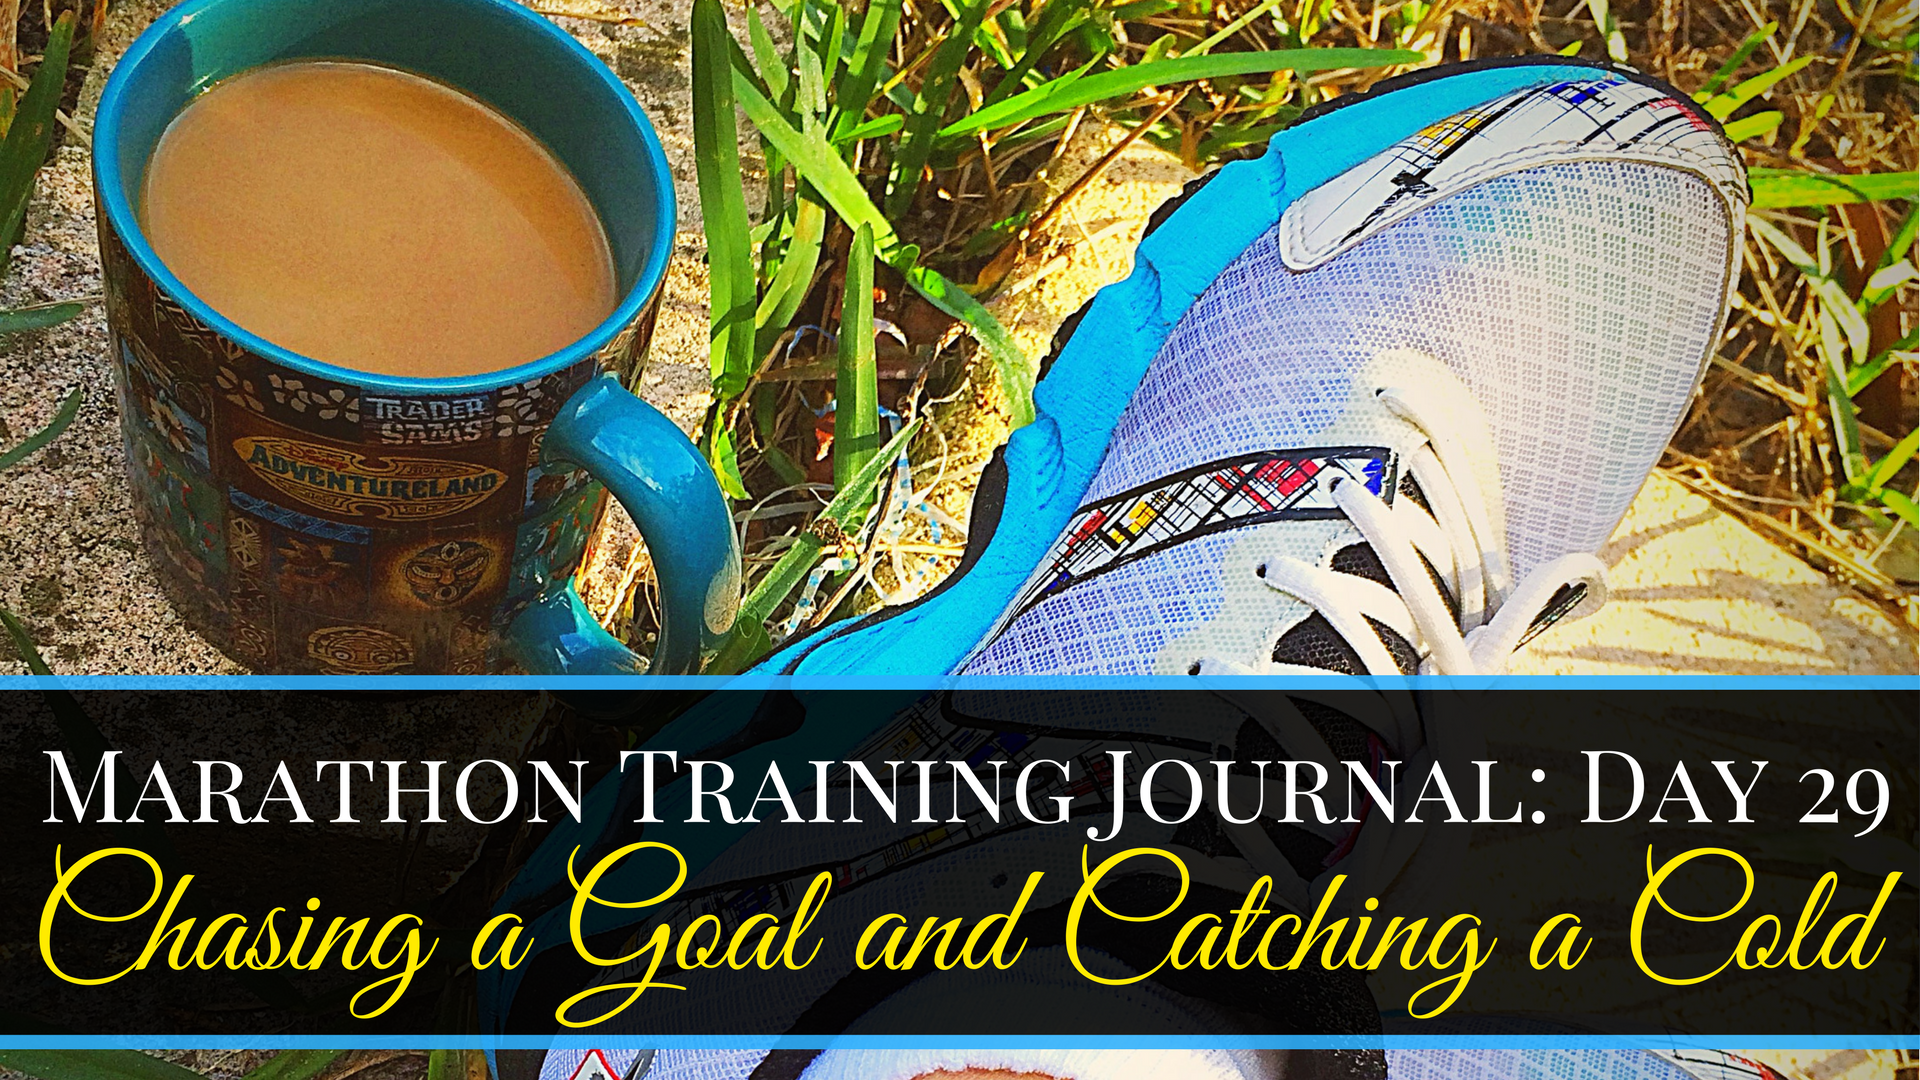 Marathon Training Journal- Day 29